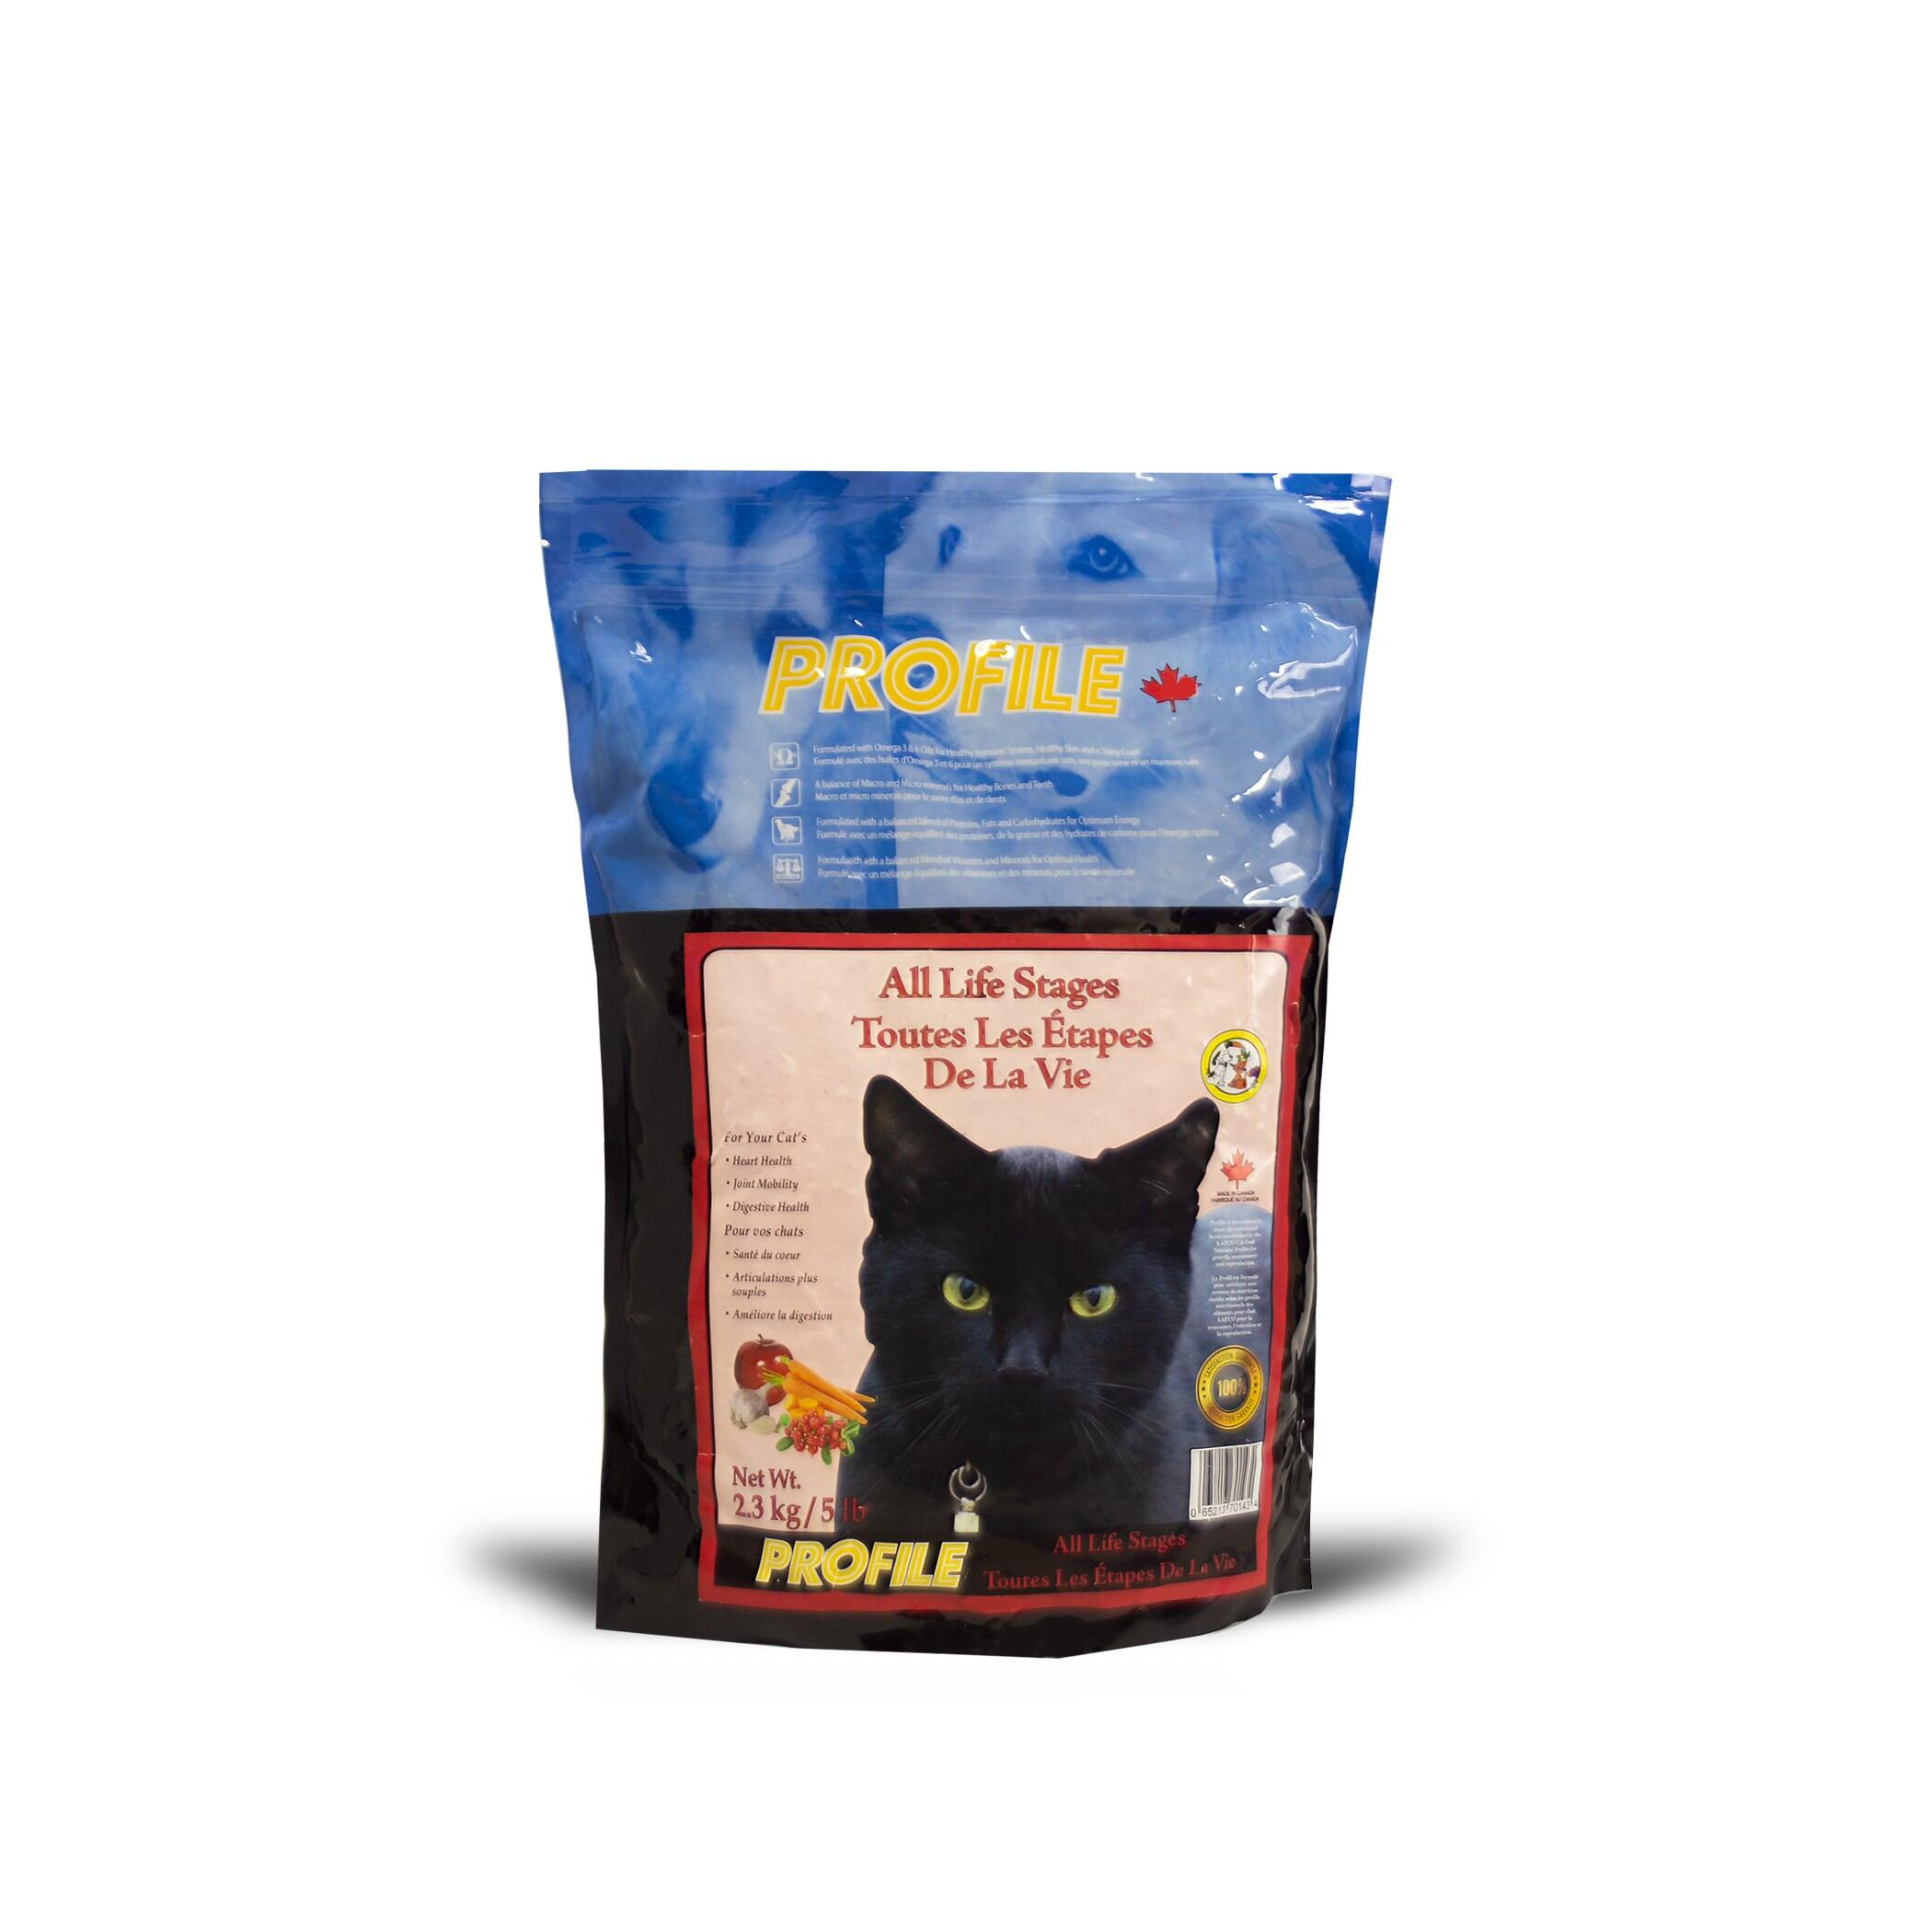 Profile All Life Stages Chicken Dry Cat Food Image